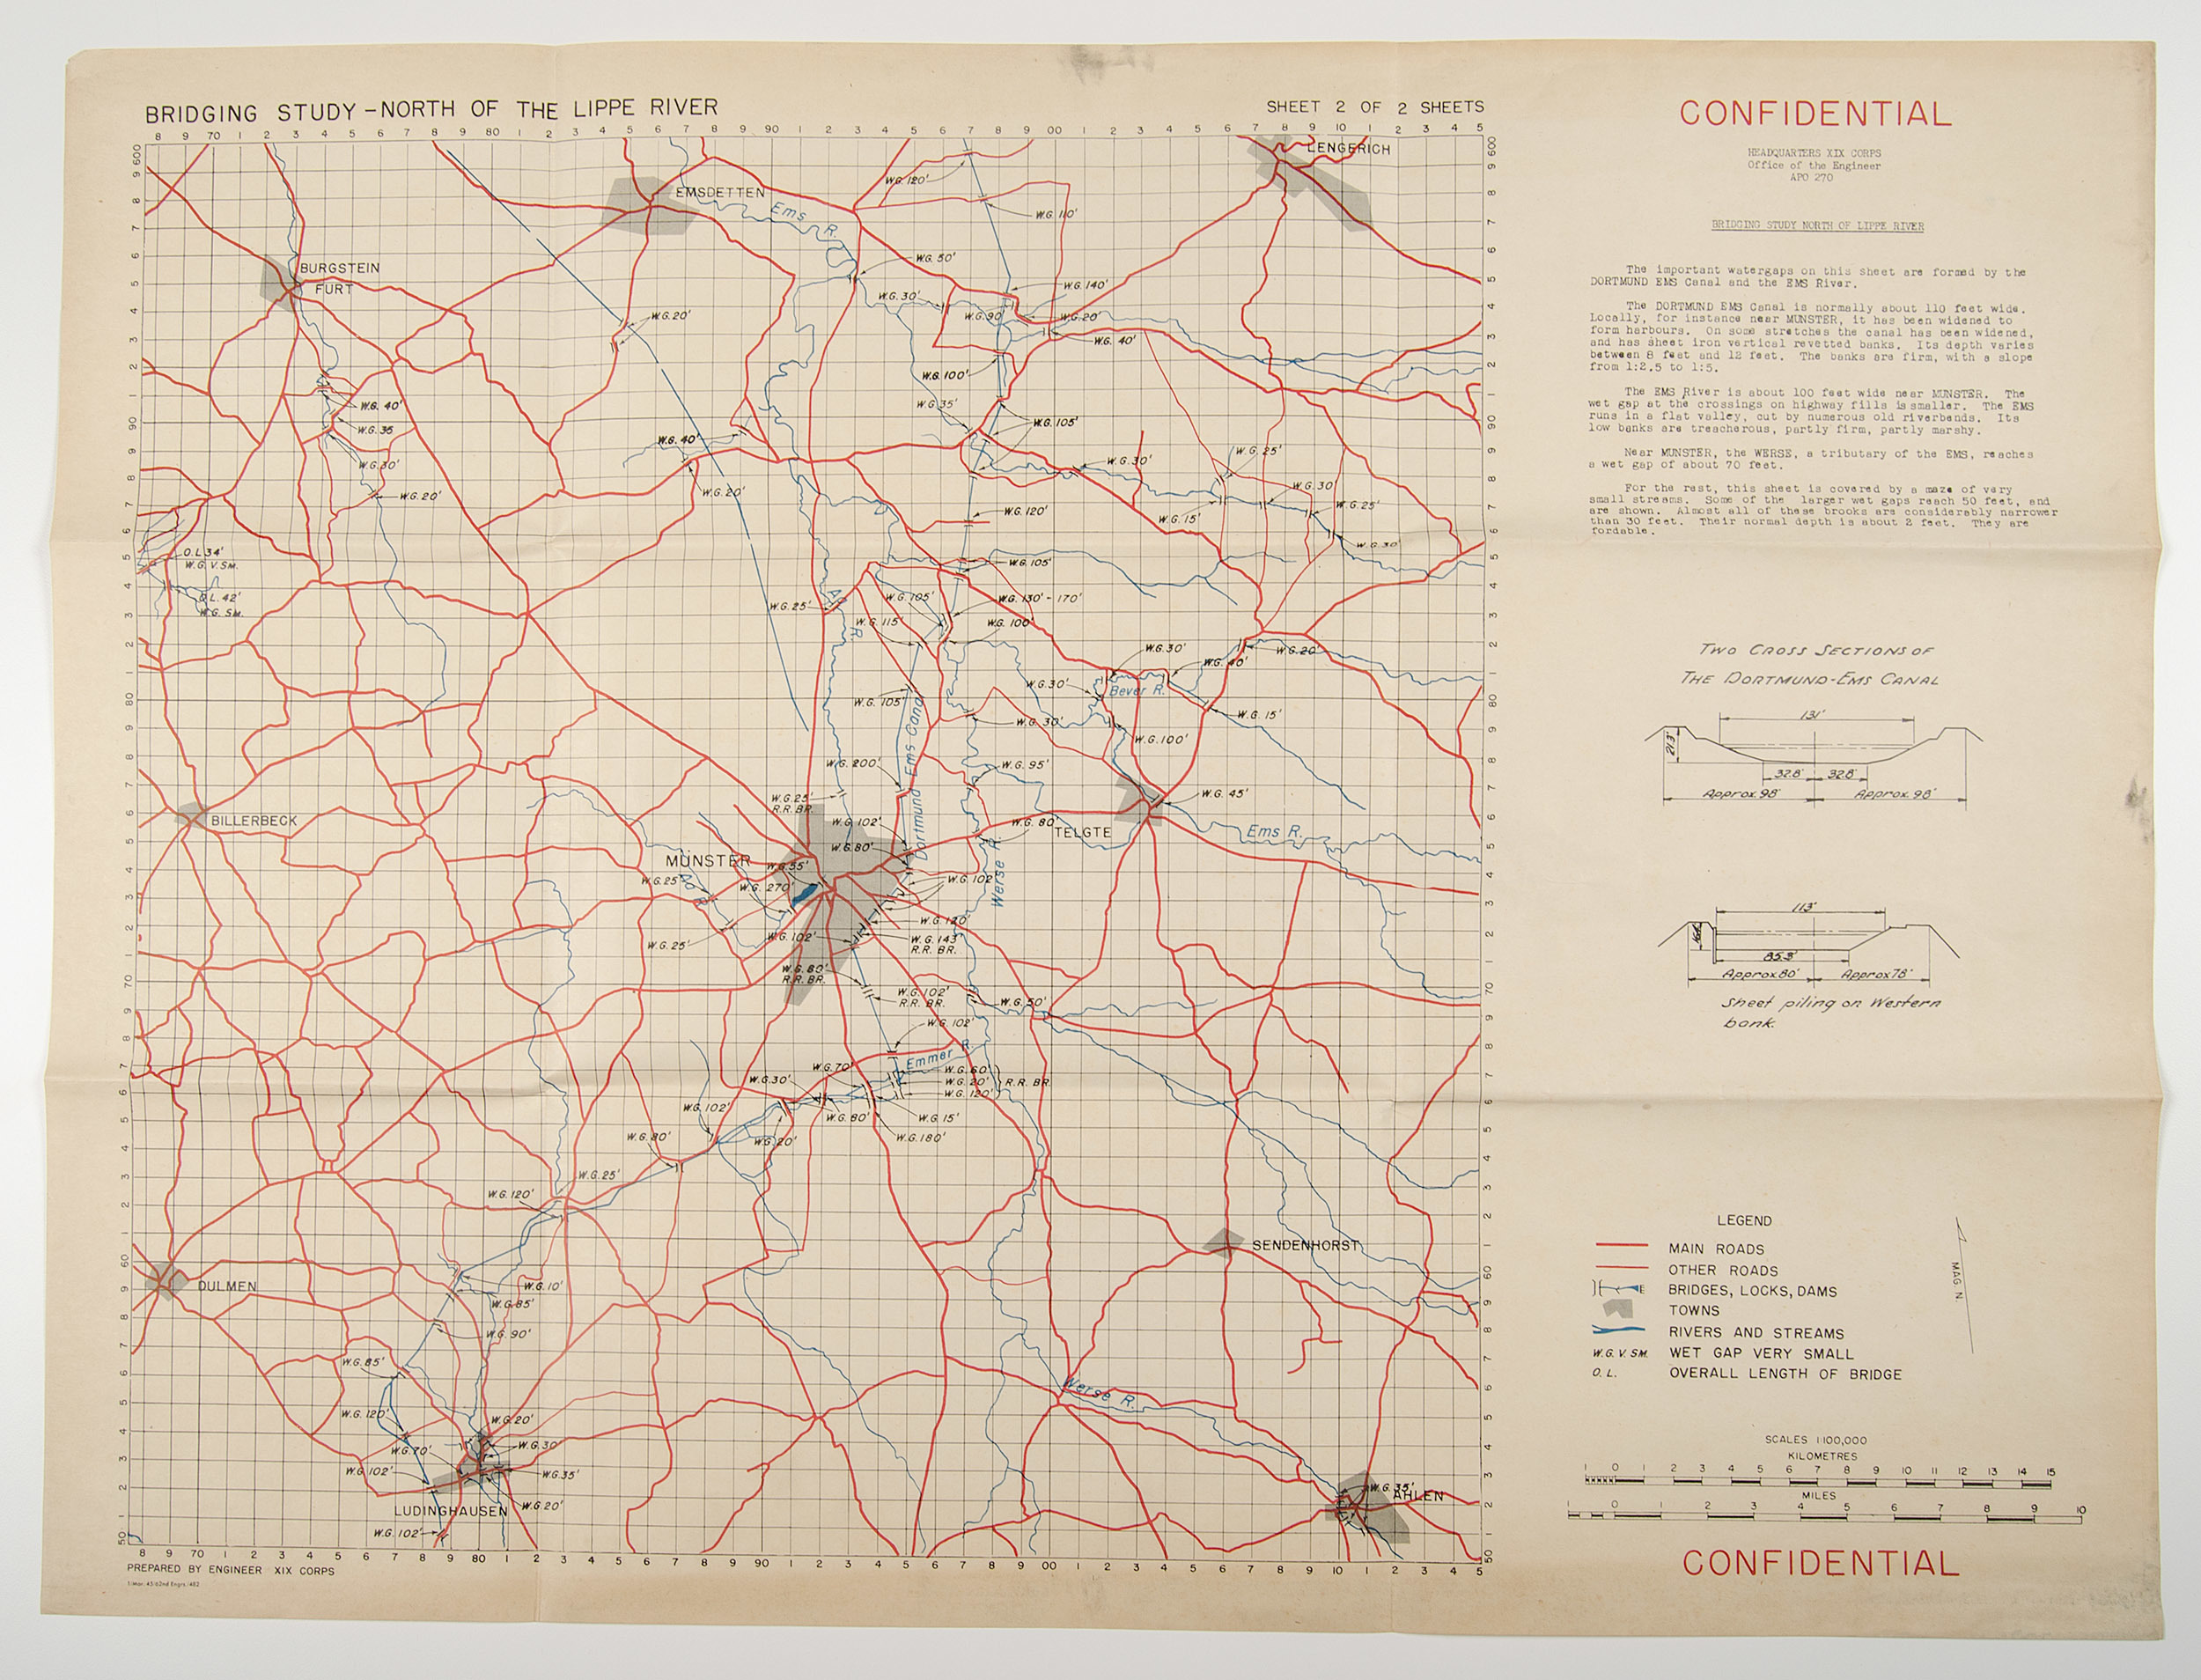 World War II Pilot Escape Silk Map, Aerial Pilots Maps, and More ...